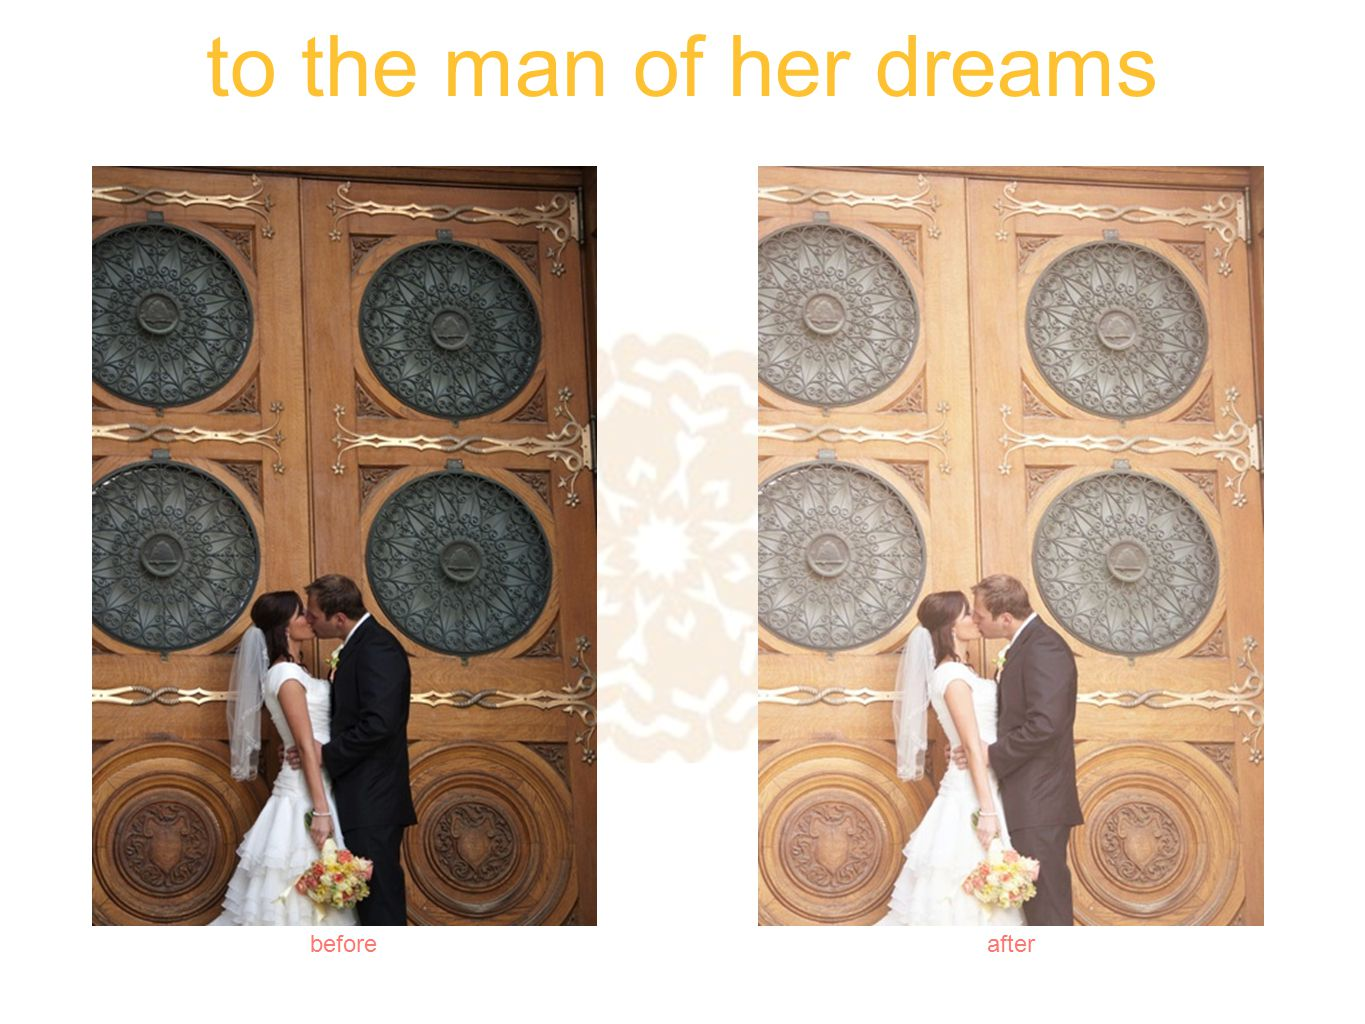 to the man of her dreams beforeafter